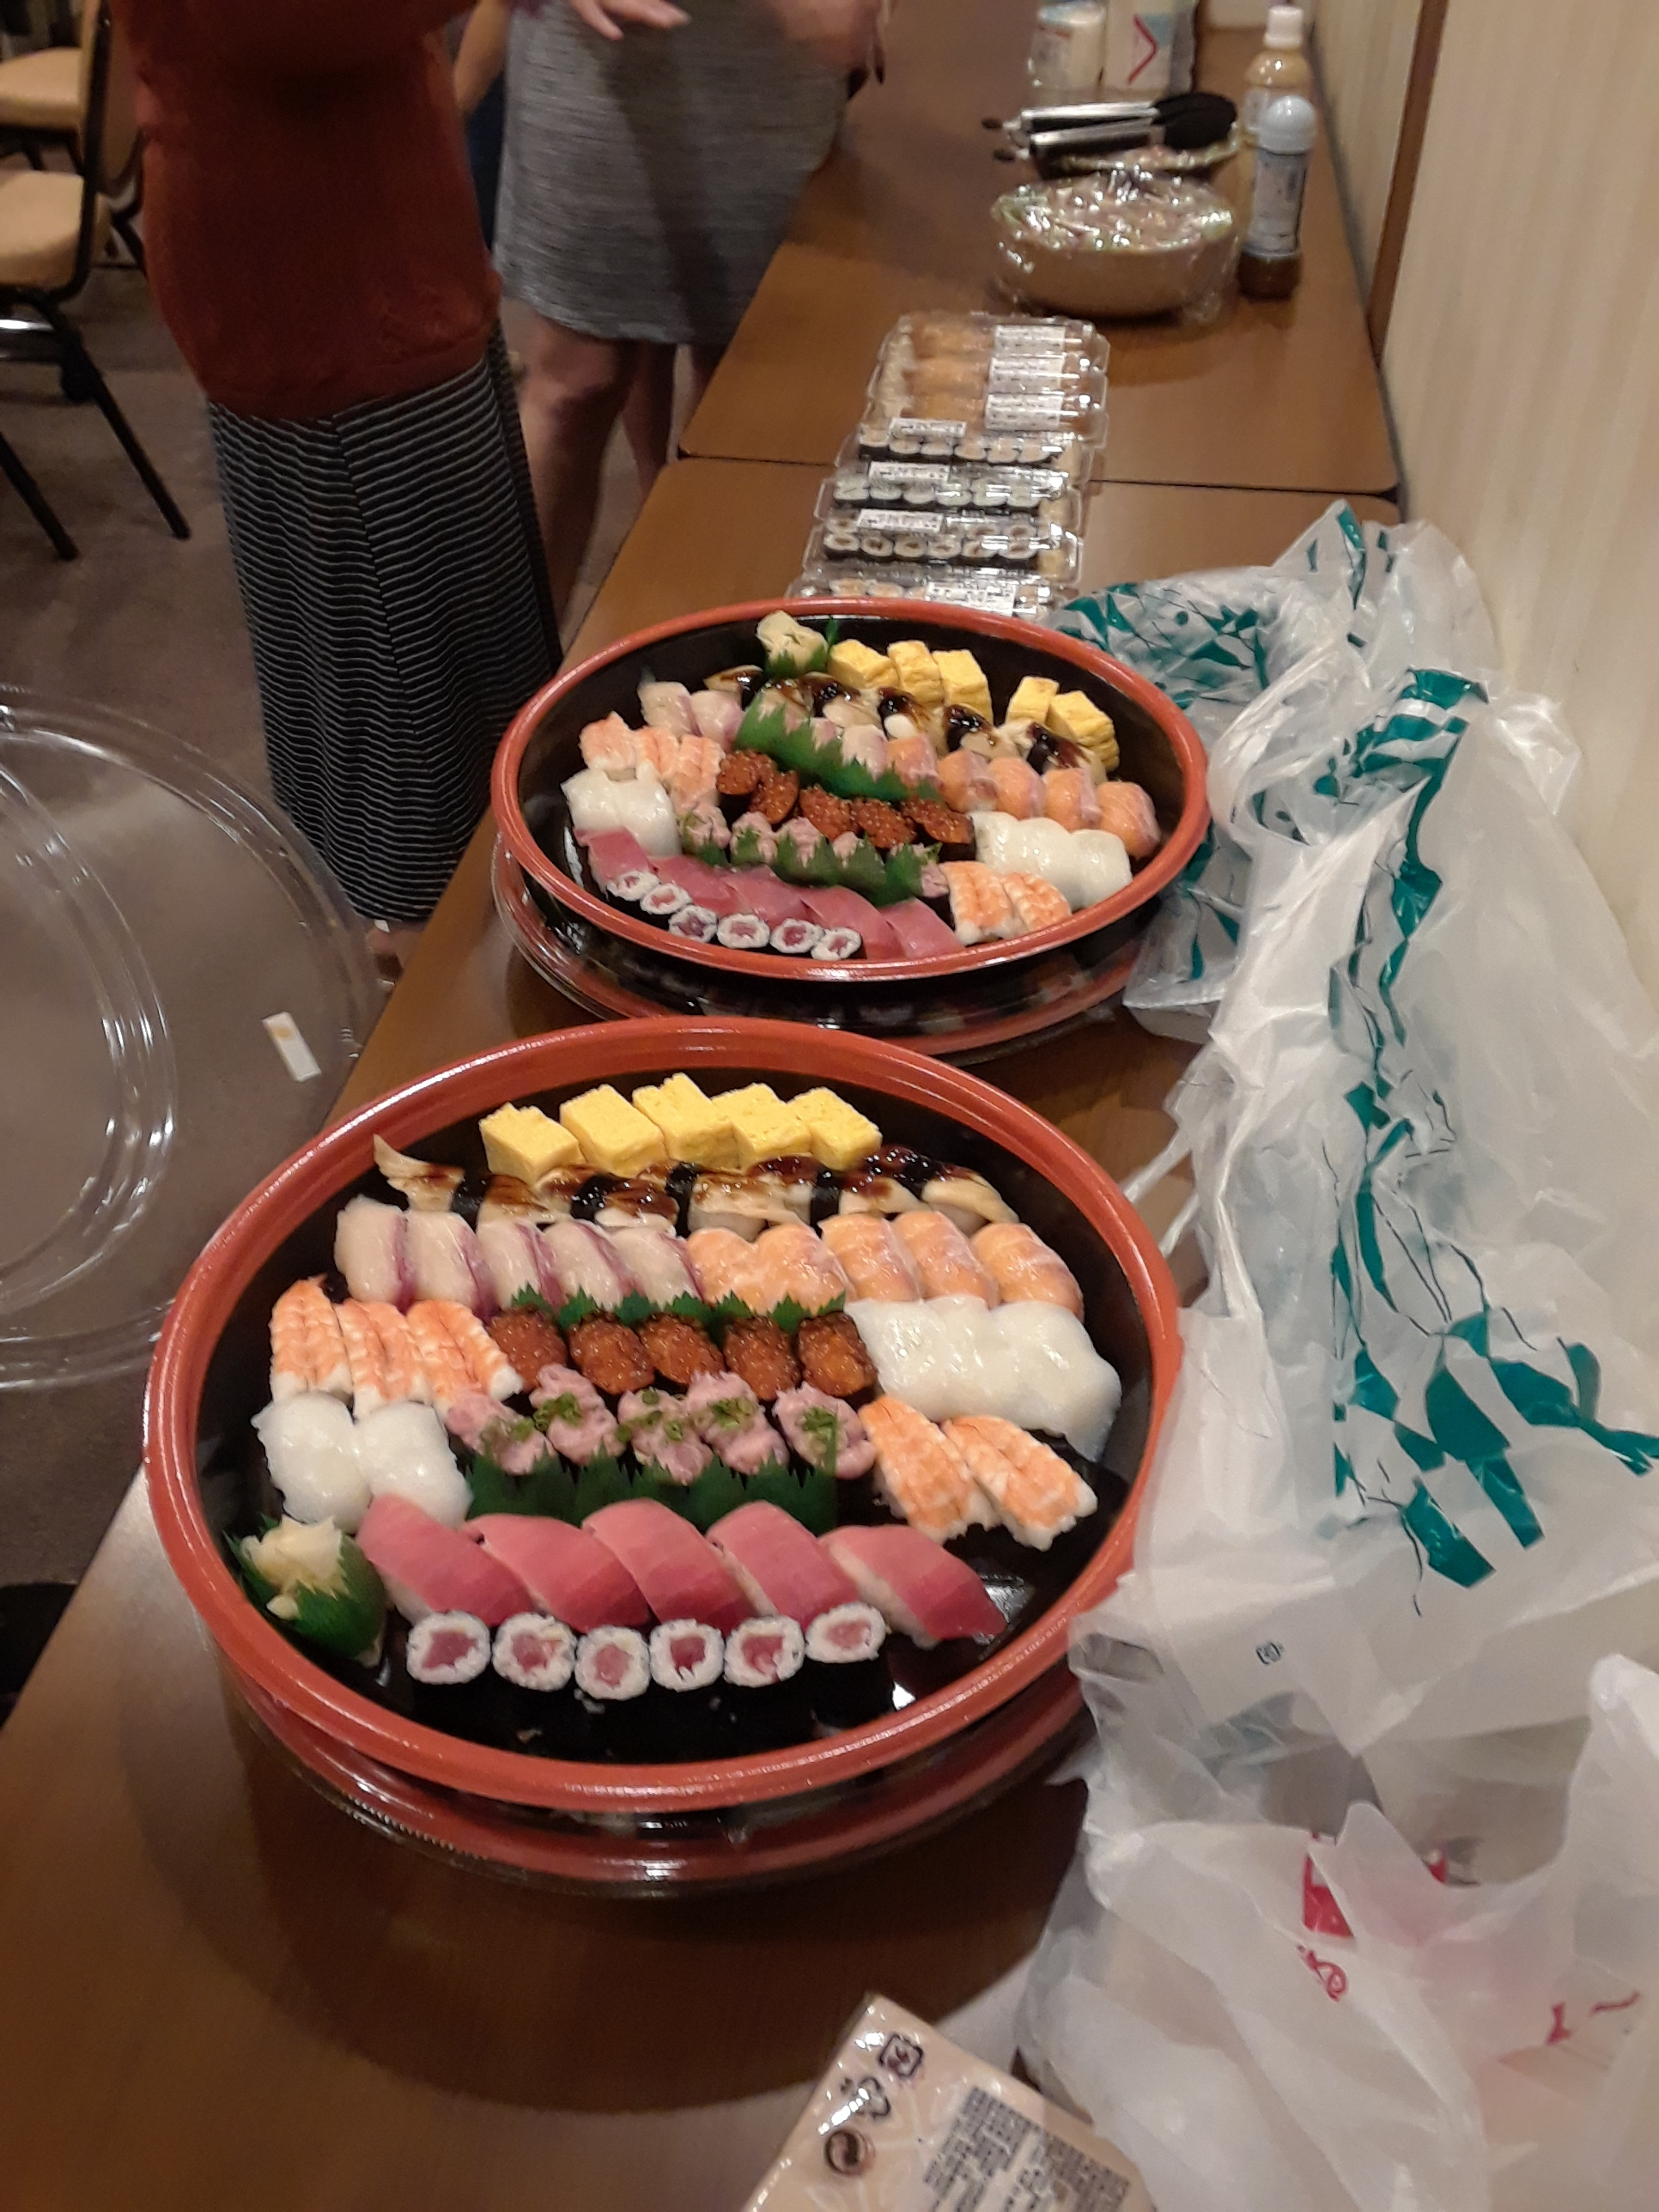 Part of the evening's meal -- not the only time we'd eat pizza and sushi that week. Copyright 2017, Anna Broadway.